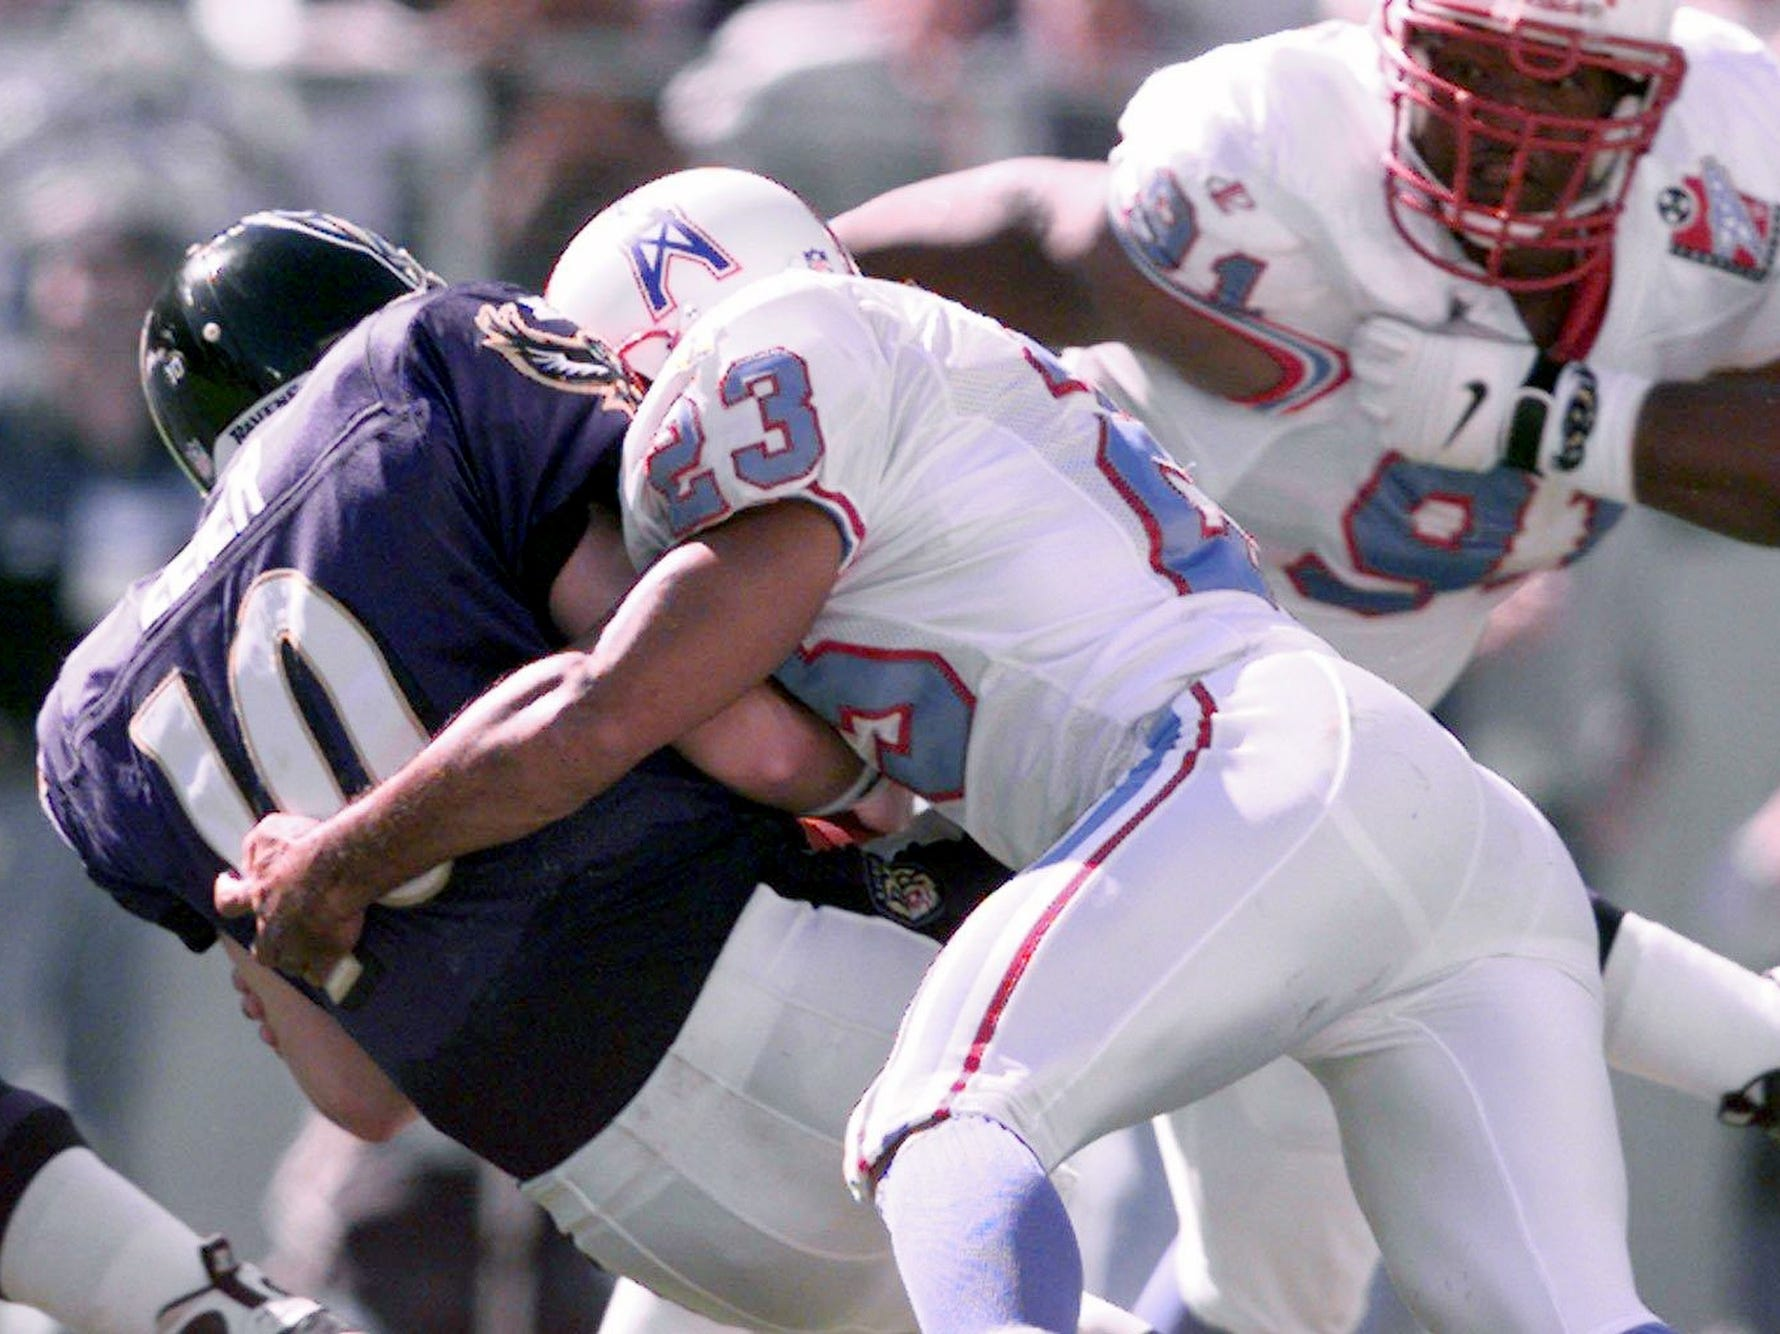 Tennessee Oilers safety Blaine Bishop (23) sacks quarterback Eric Zeier of the Baltimore Ravens during the first quarter action. The Oilers won the game 12-8 on the road Oct. 11, 1998.